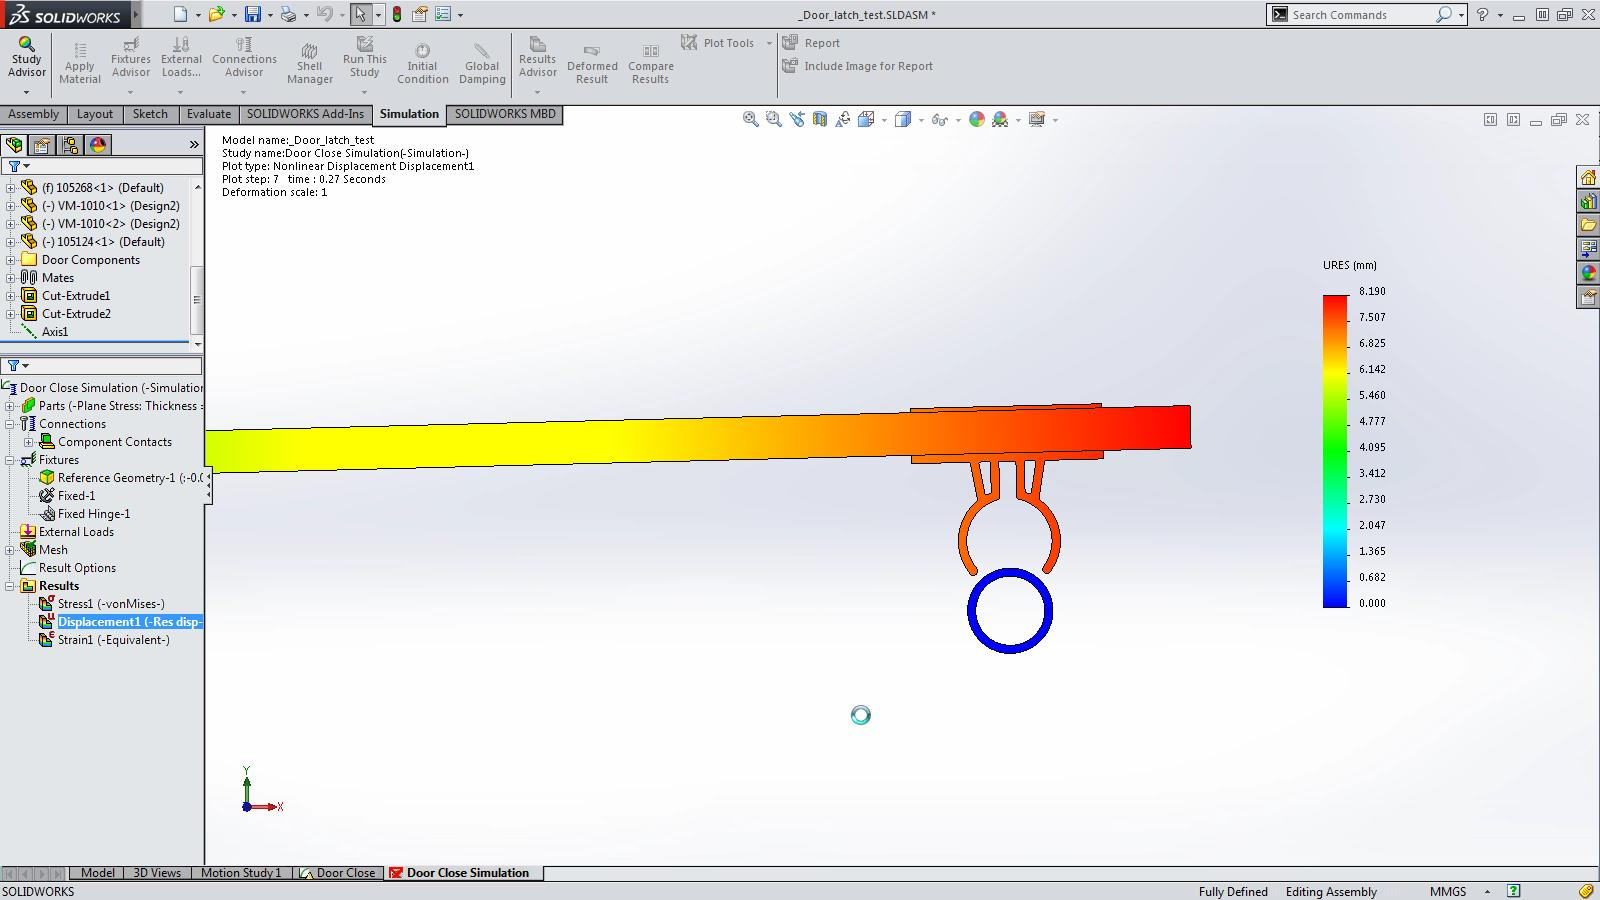 SOLIDWORKS 2015 Sneak Peek: Incremental Simulation Results